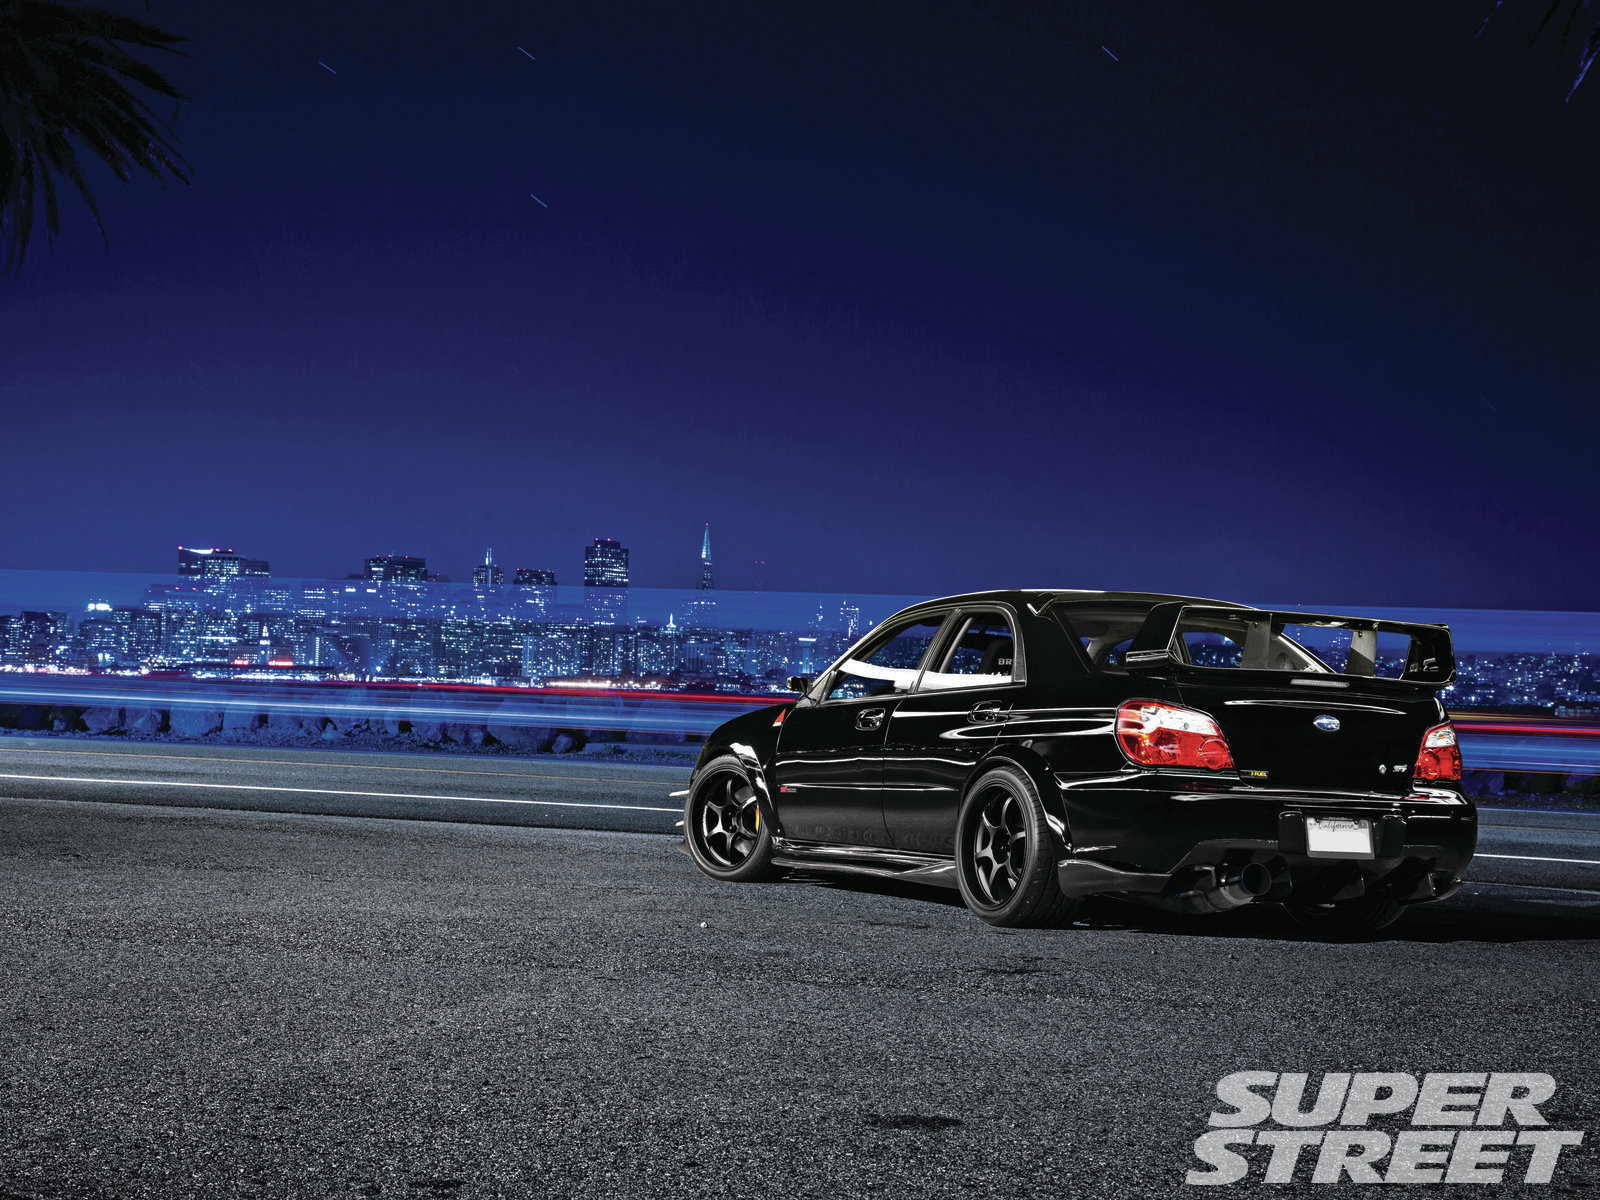 Super Street Feature 2007 Subaru Wrx Sti Baby Got Black